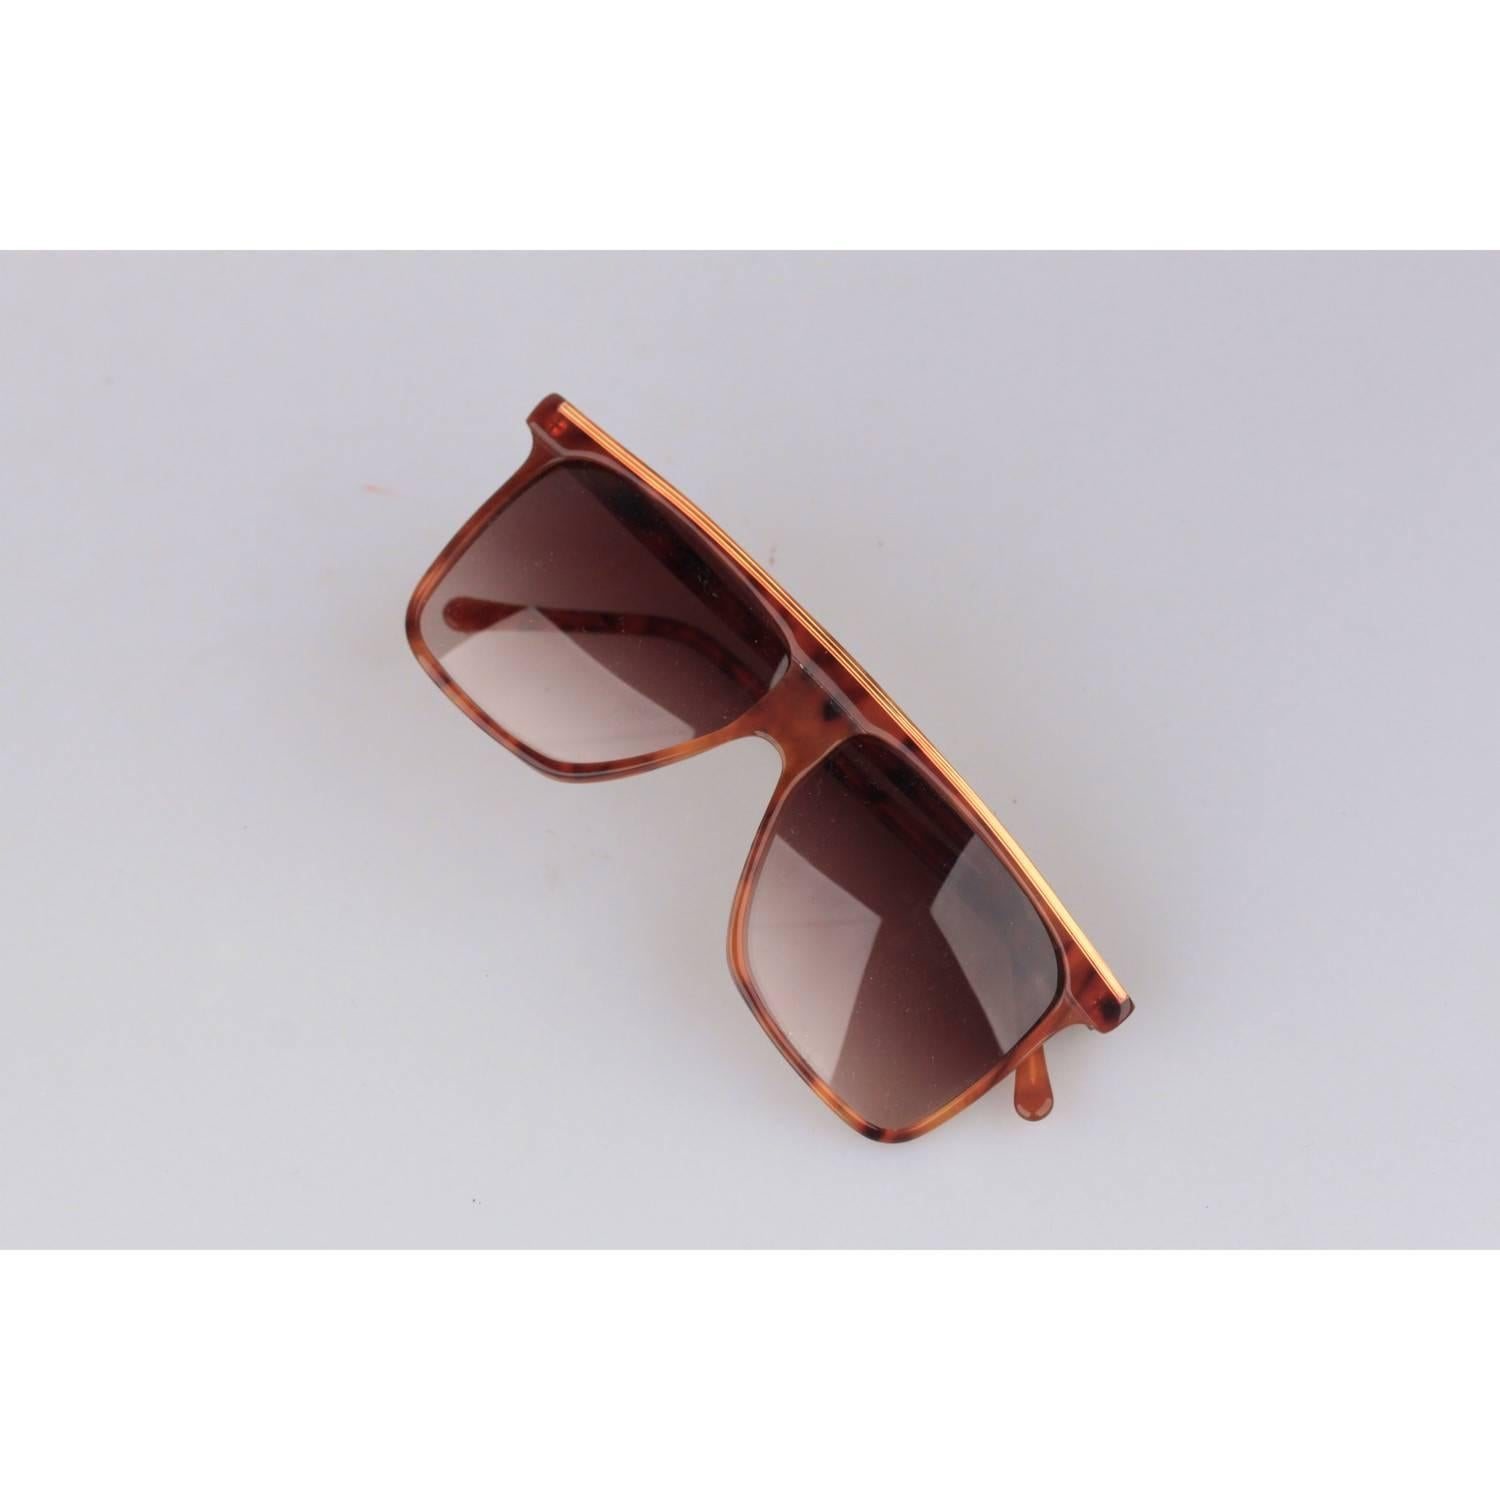 834f13810 GIANNI VERSACE Vintage Brown Square Sunglasses 418 54-14mm NOS For Sale at  1stdibs